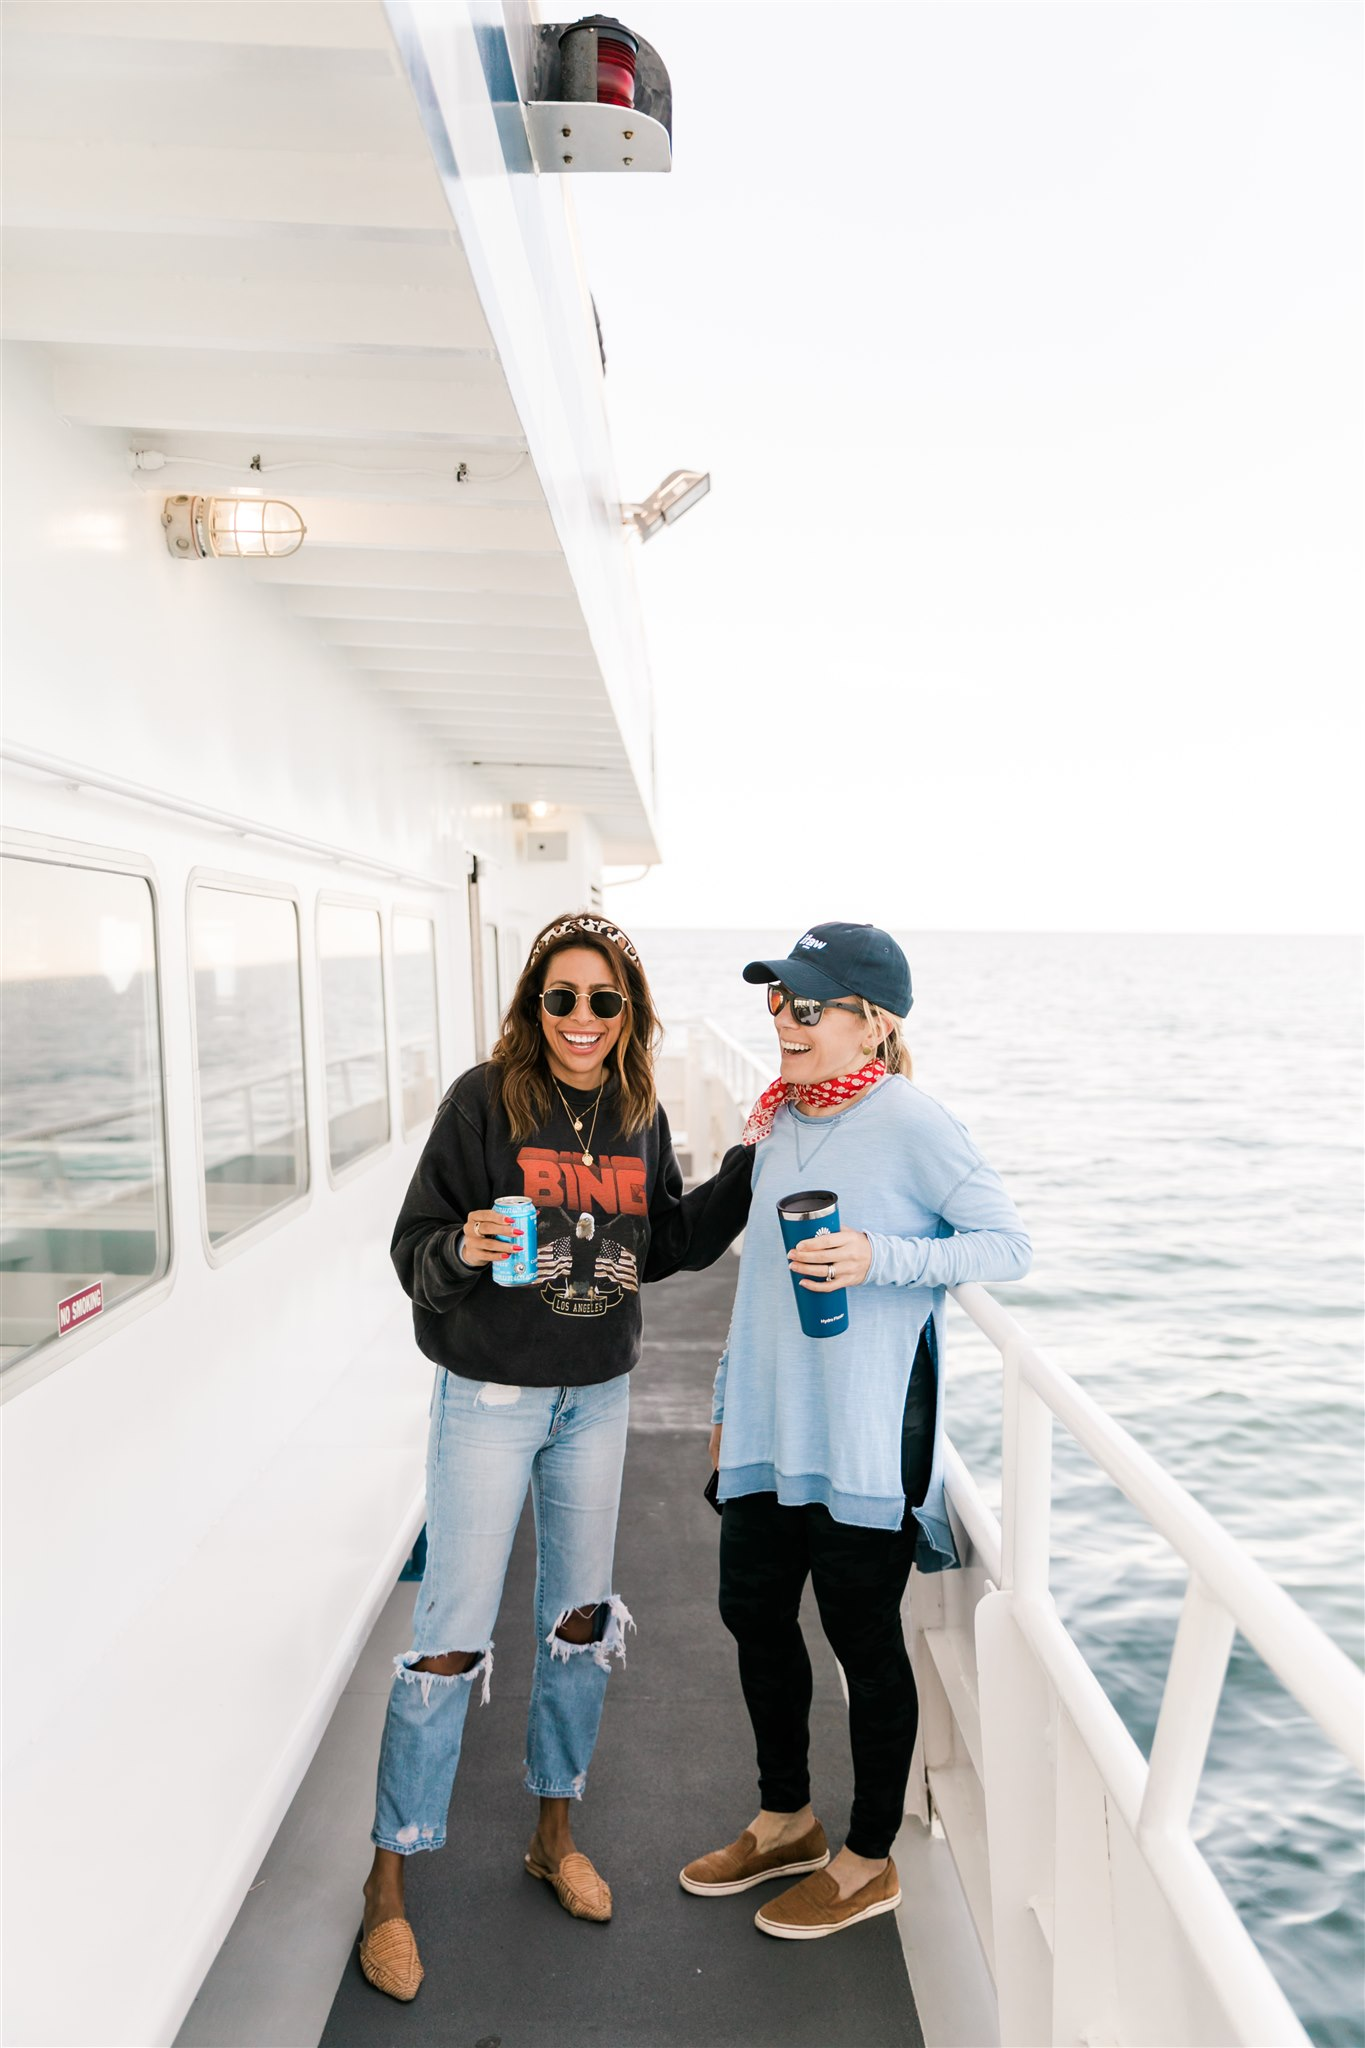 When you have the whale watching boat all to yourselves - Ptown, Cape Cod with IFAW + Kin Travel